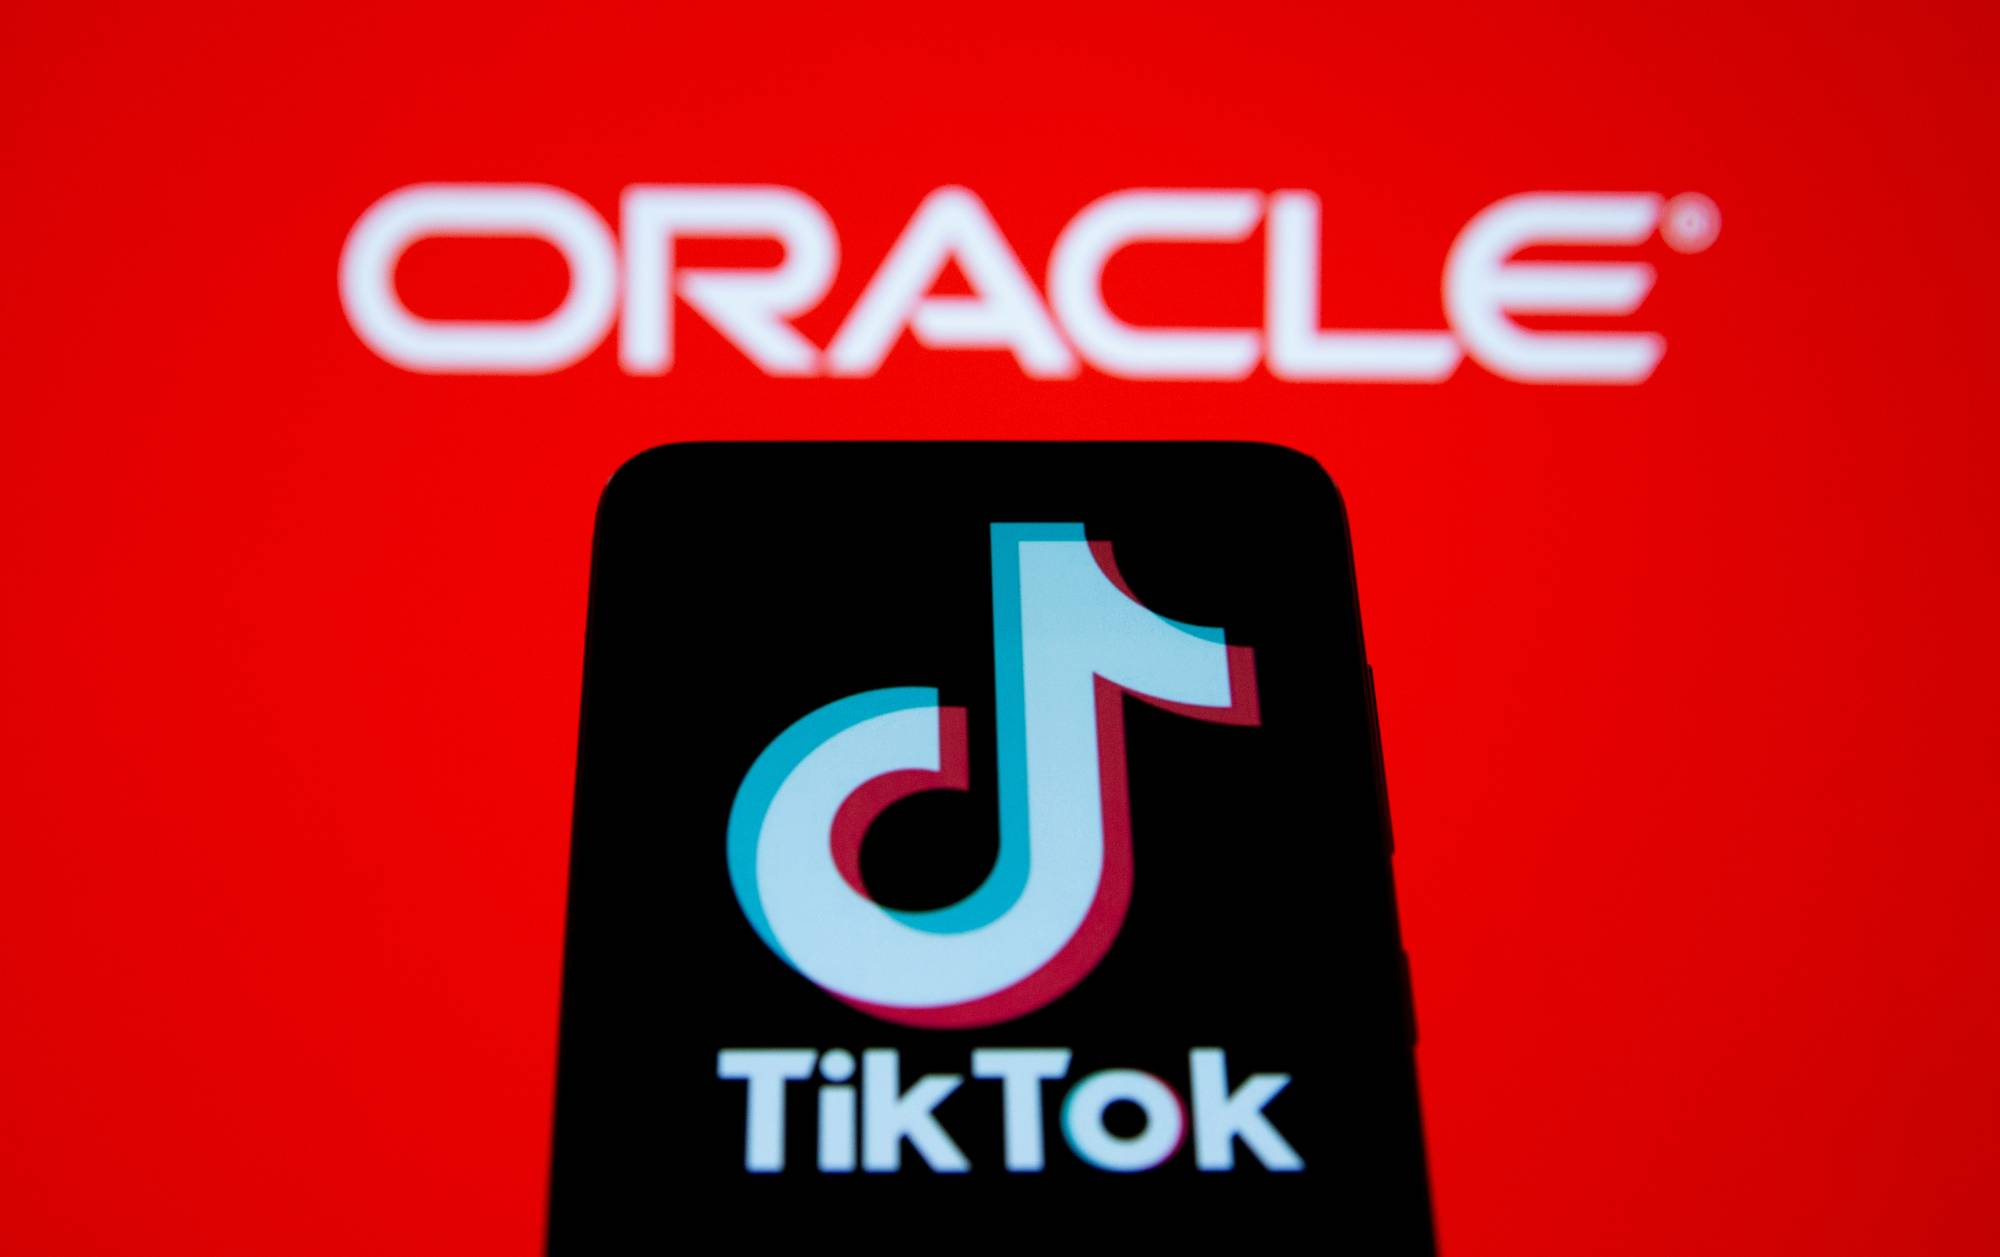 U.S. President Donald Trump said he would be briefed Thursday about a proposal that calls for Oracle Corp. to become a 'trusted technology provider' for TikTok's U.S. operations. | REUTERS